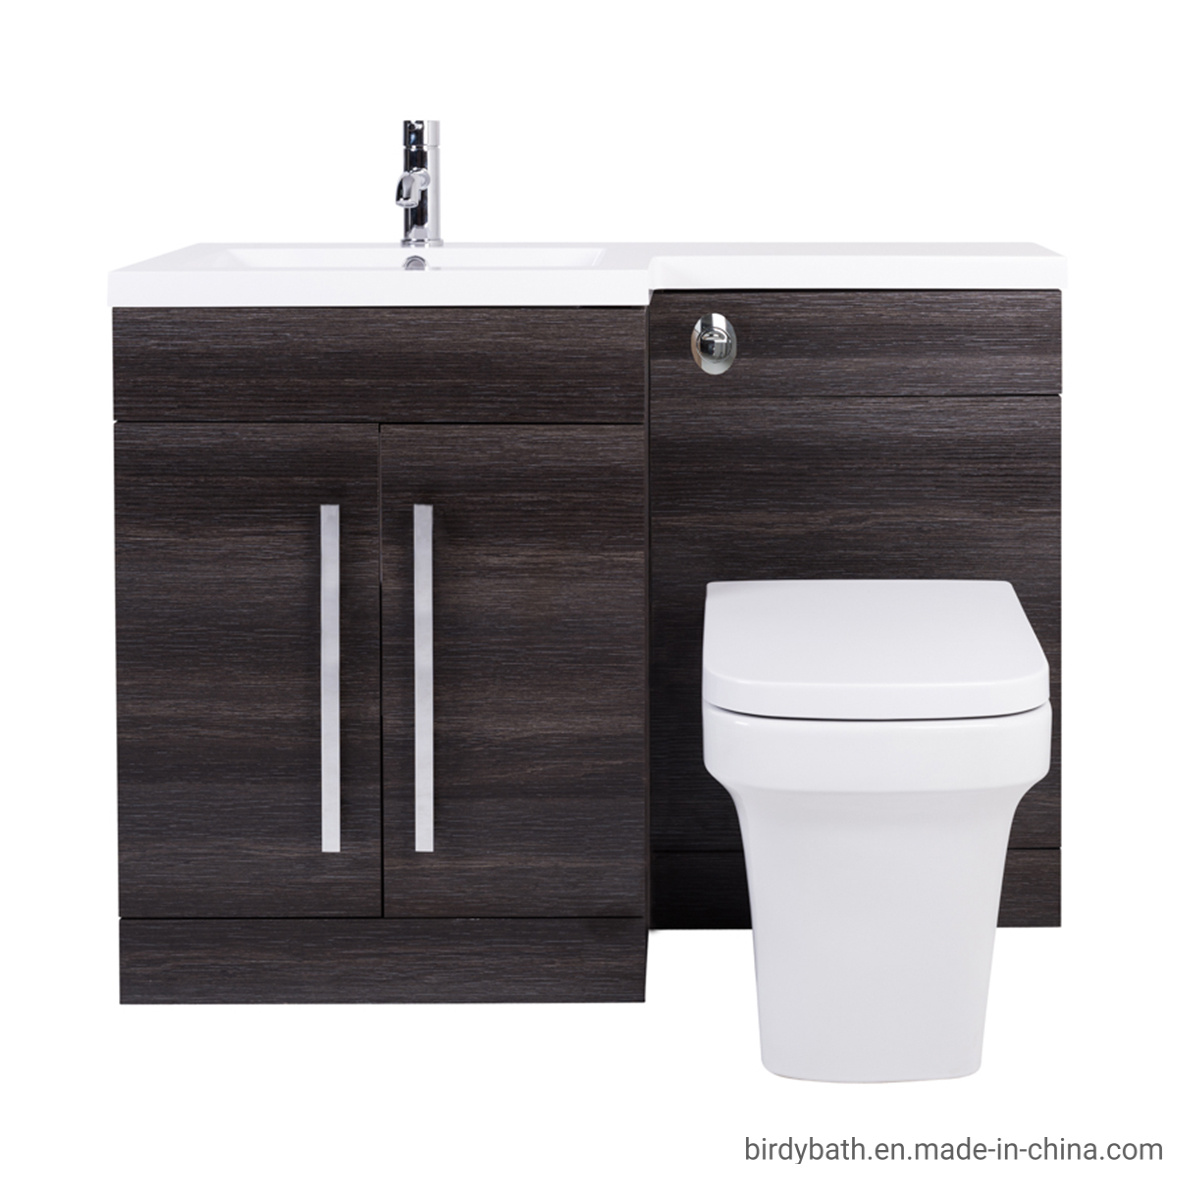 Pleasing Hot Item Bathroom Lh Rh Combination Toilet Vanity Unit Basin Grey Evergreenethics Interior Chair Design Evergreenethicsorg